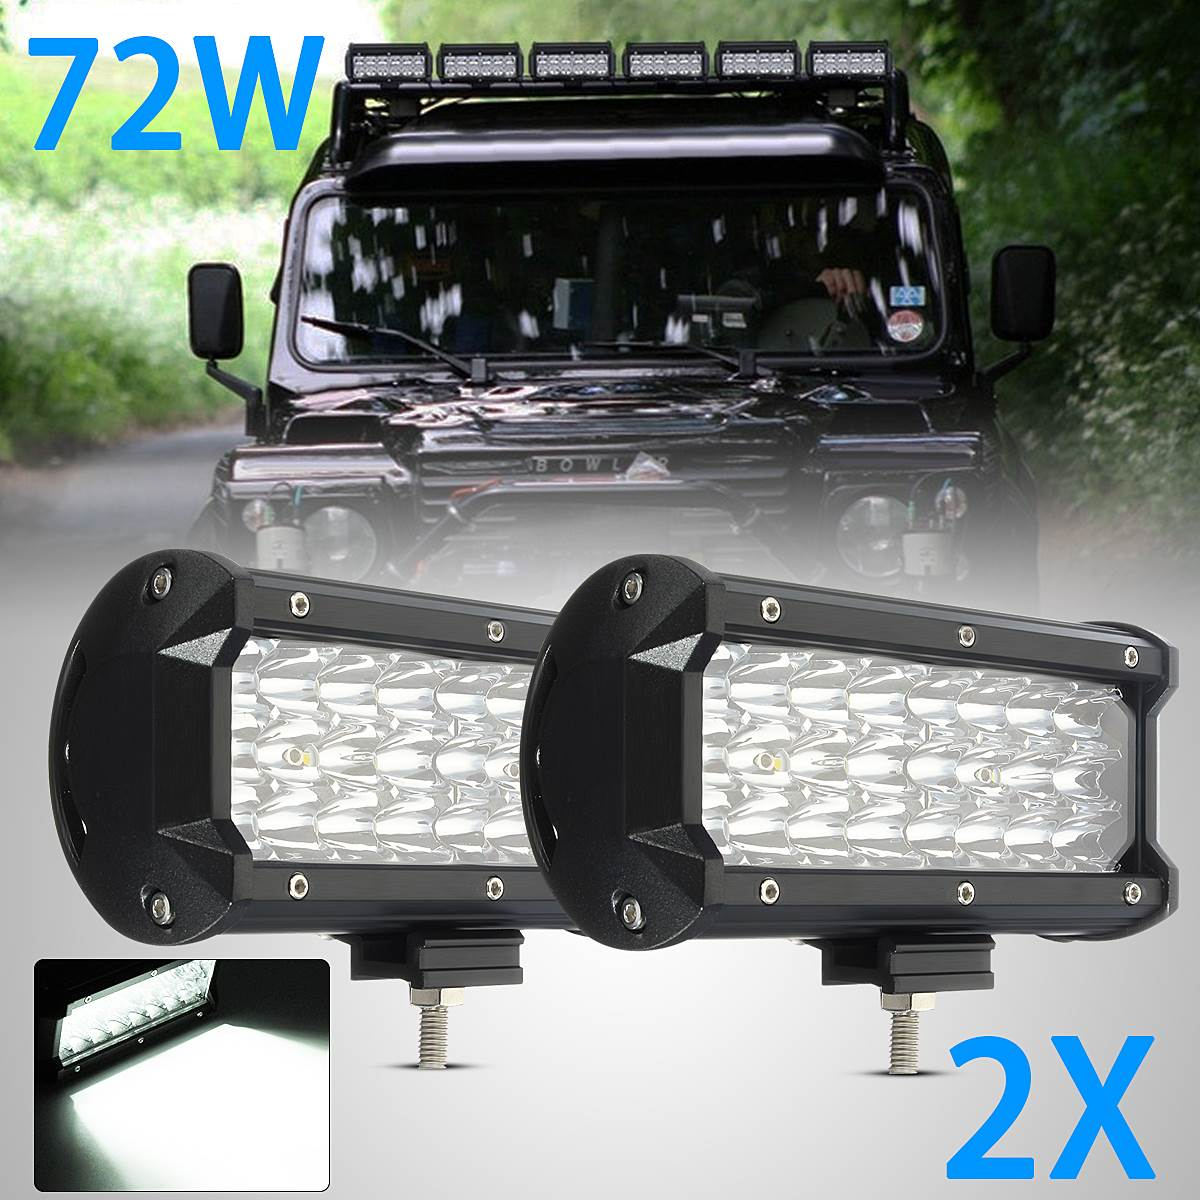 2X 12Inch 72W 24LED Car light Led Lamp Spotlight Work Lihgt for off-road vehicles, trucks, motorcycles, automobiles  9-32V 2016 new super bright 50w 12 inch 9 led car off road lamp 9 32v ip68 automobile truck work light fog driving light energy saving